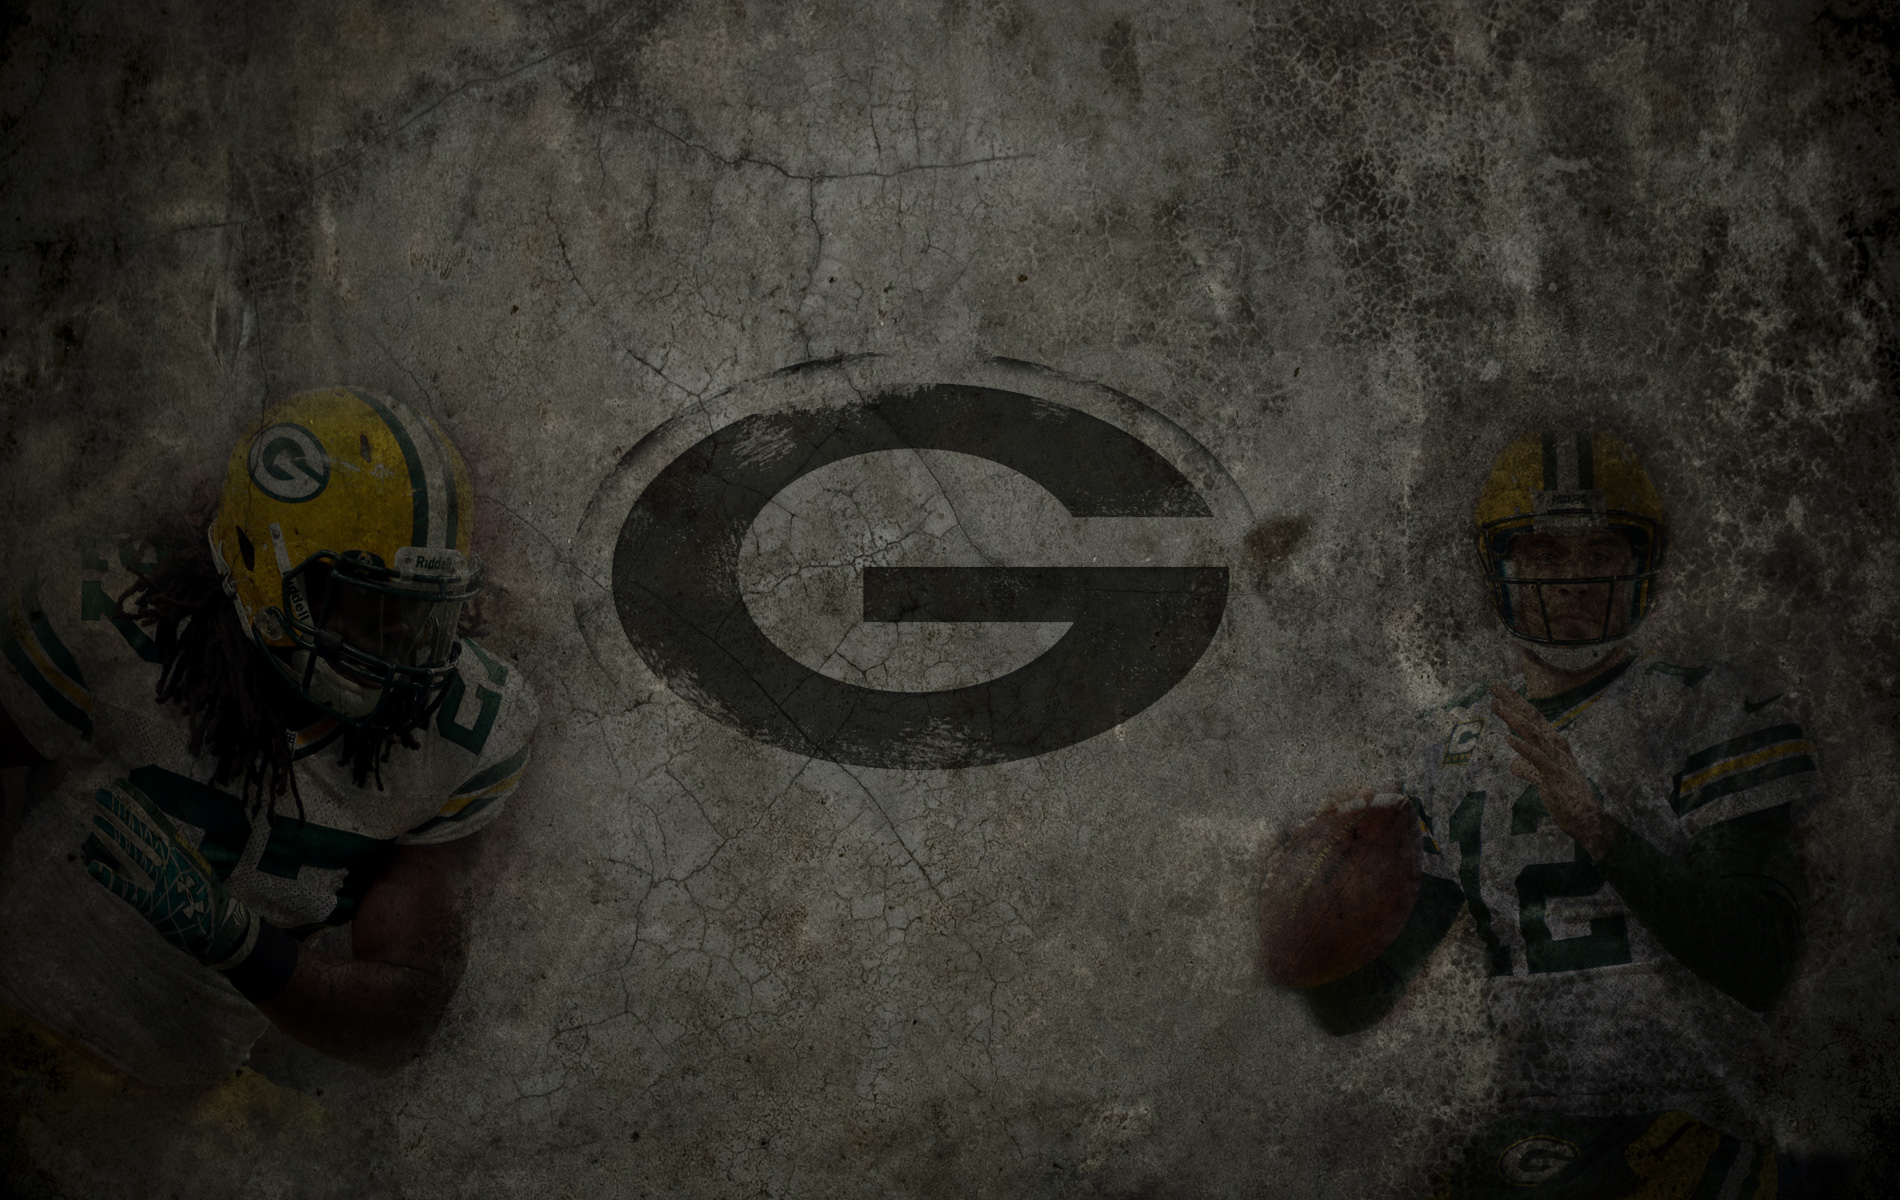 Green Bay Packers images Sick Packers Wallpaper HD wallpaper and background photos